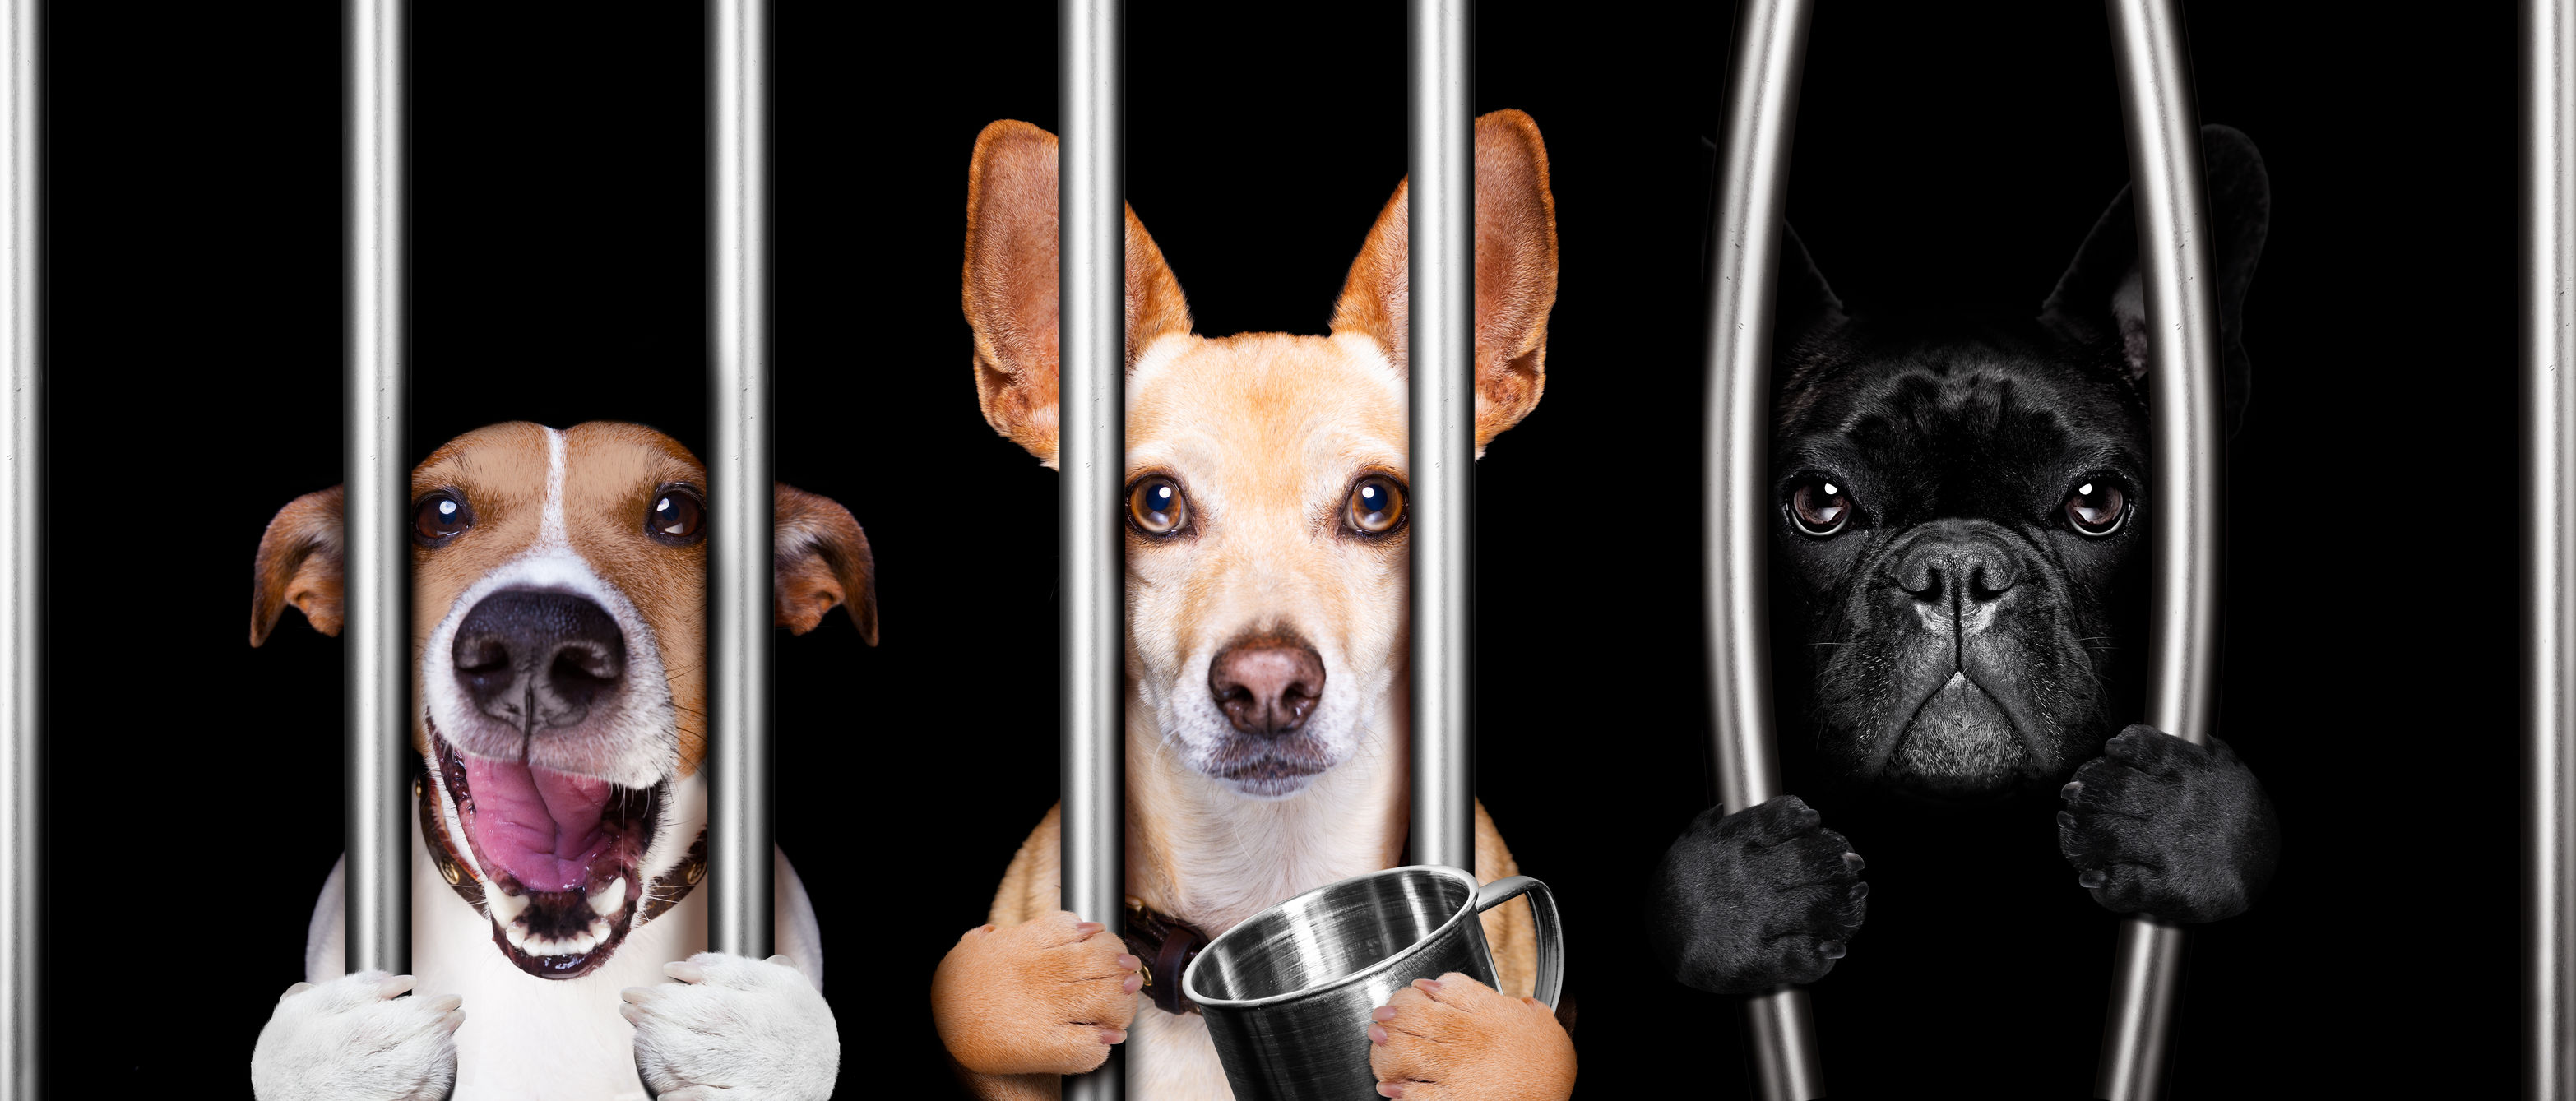 Do you punish your dog? If so, how? If not, why not?